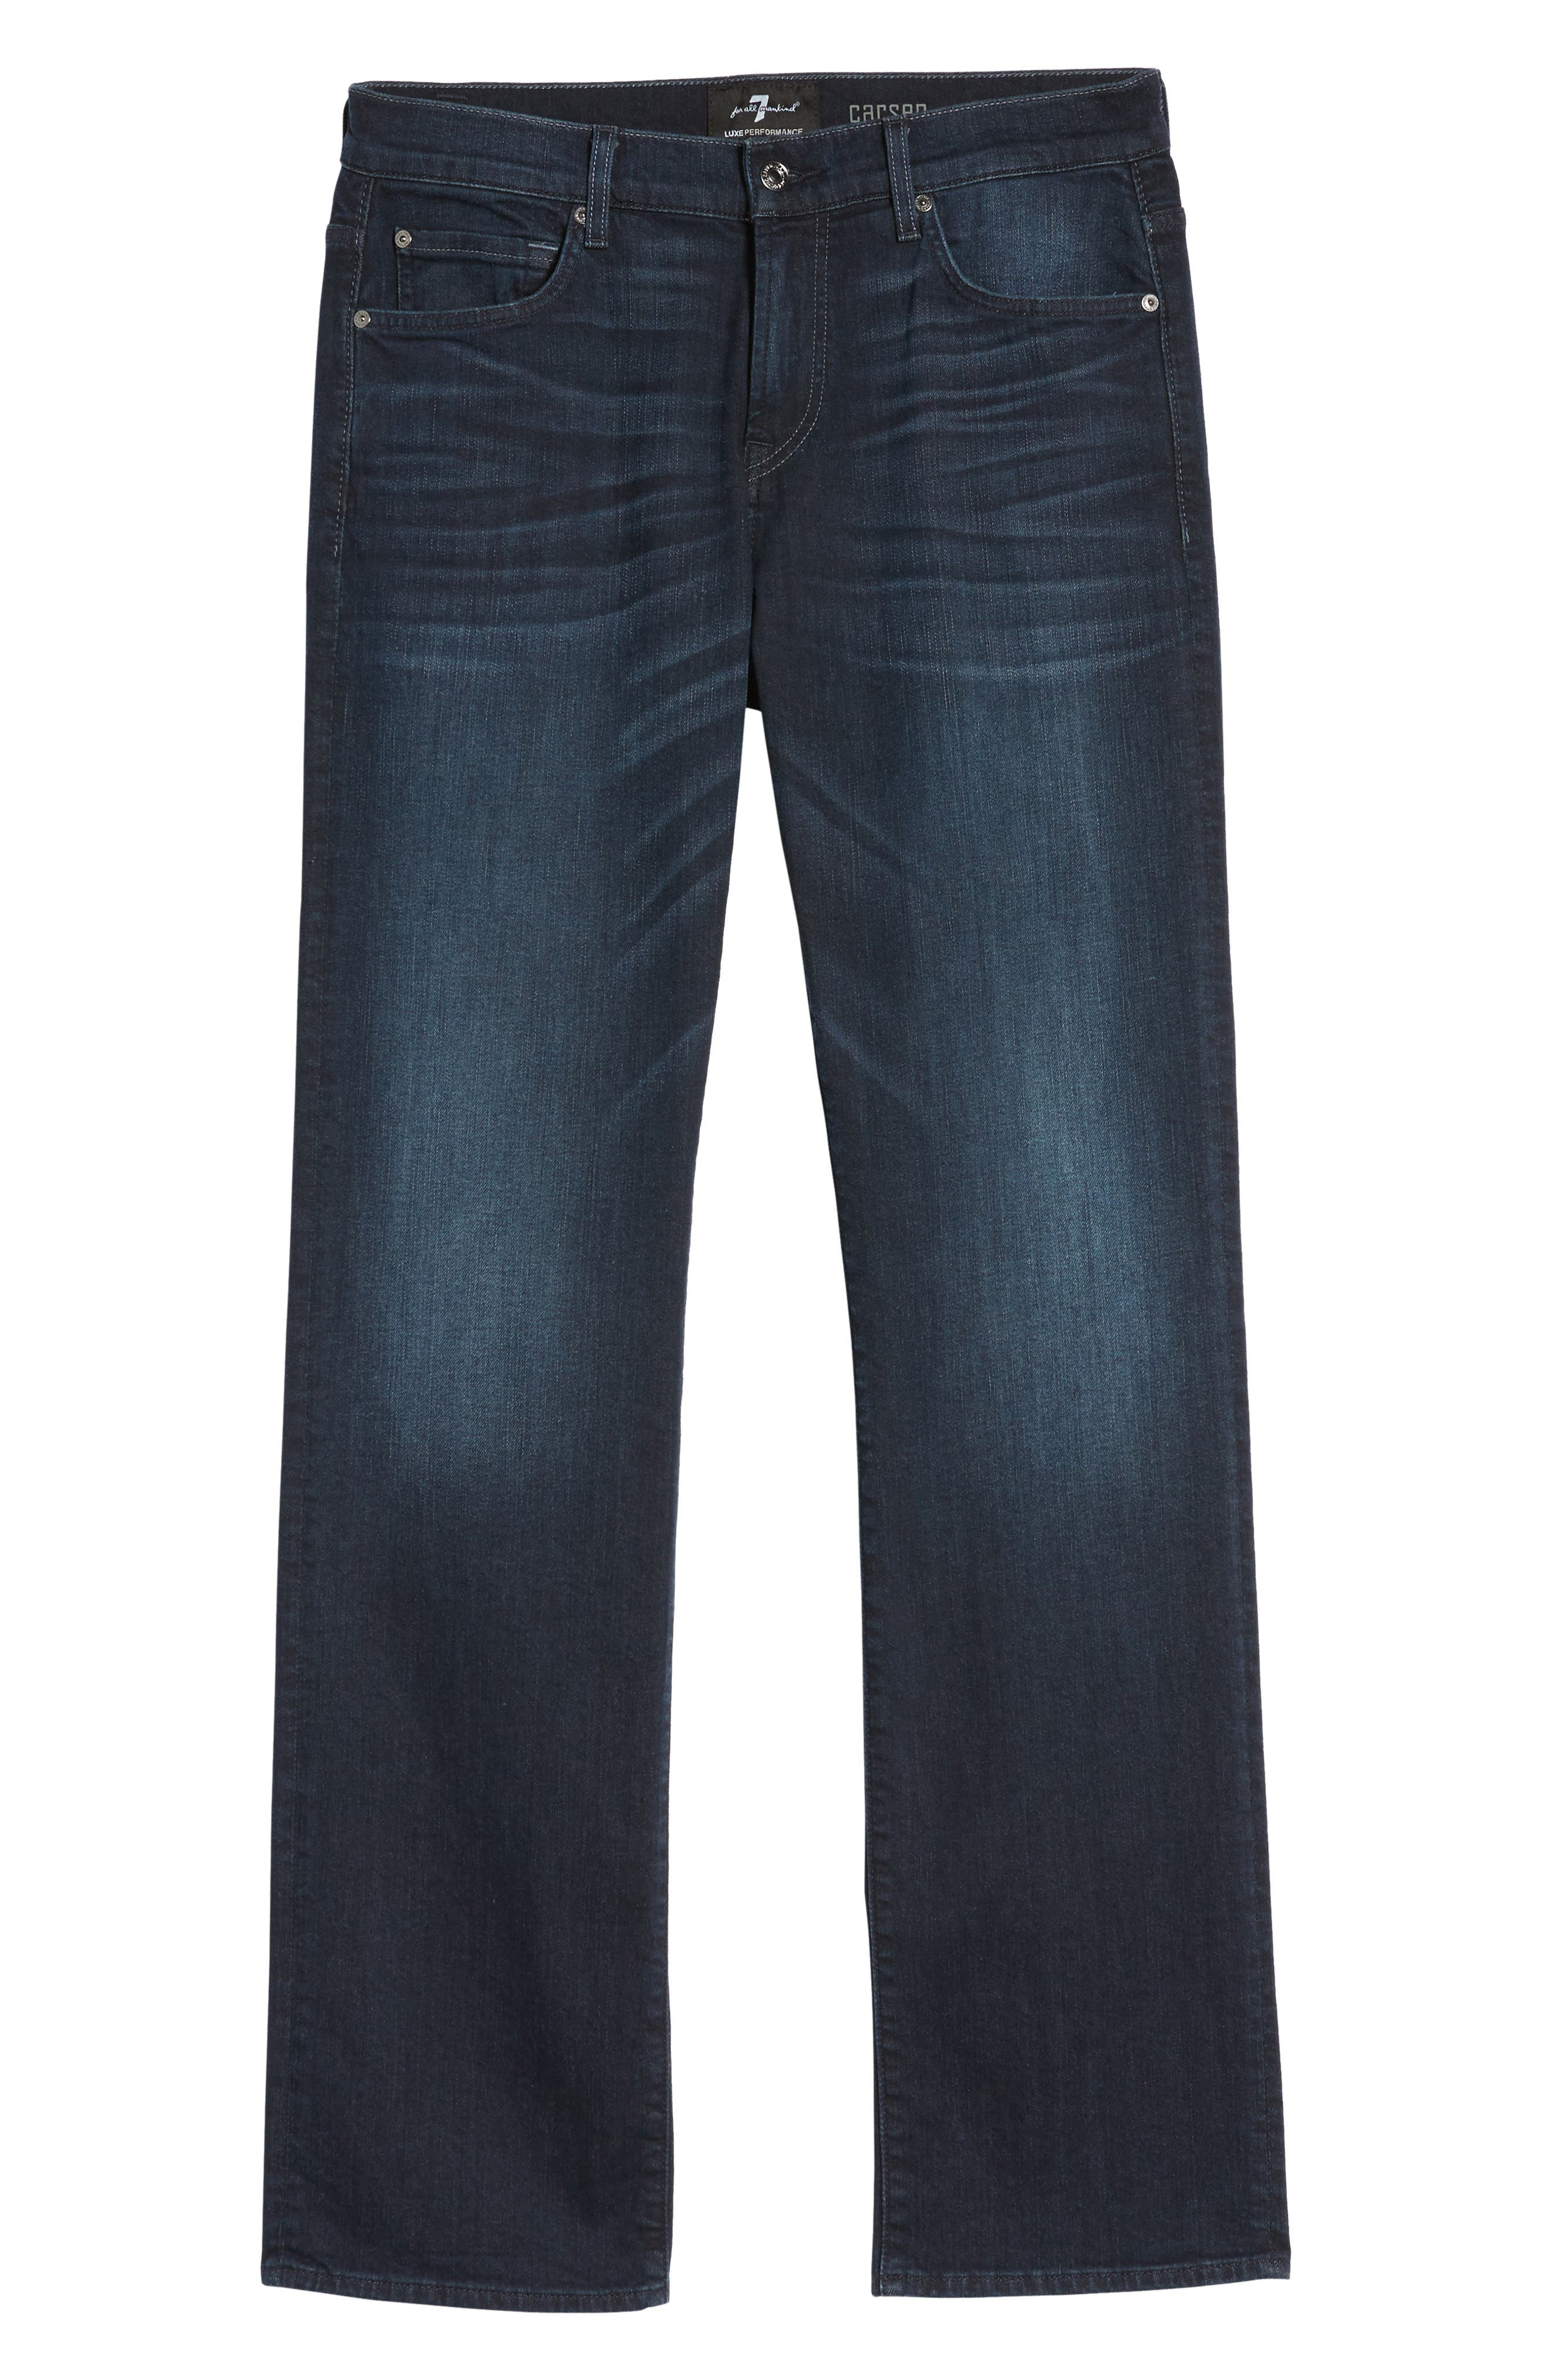 Luxe Performance - Carsen Straight Leg Jeans,                             Alternate thumbnail 6, color,                             DARK CURRENT